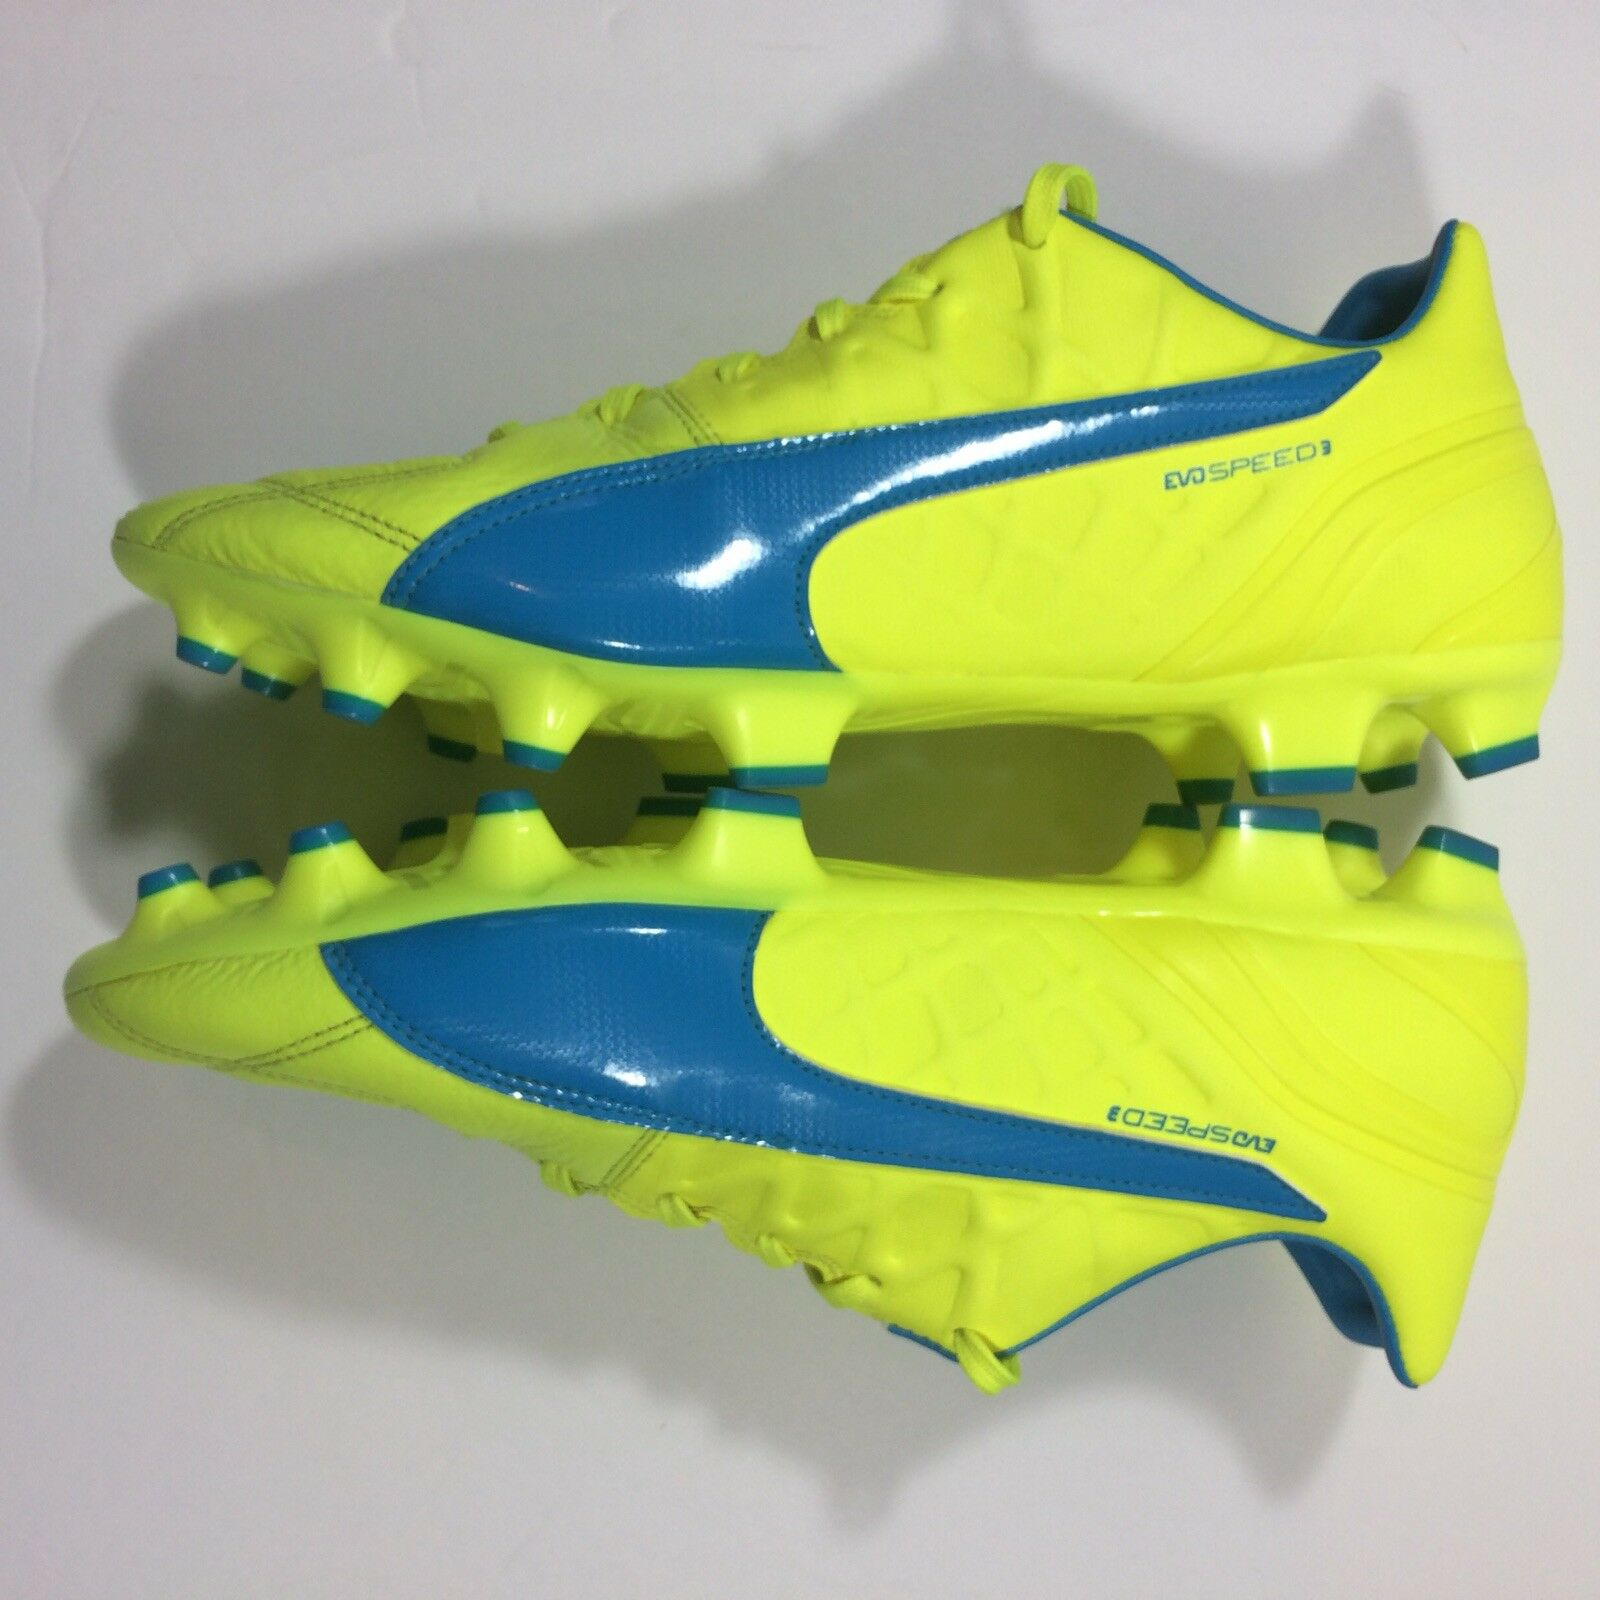 NWB Puma Evospeed 3.4 Lth Firm Ground Football/Soccer Cleats Cleats Cleats  Herren 10.5 Gelb 71780d